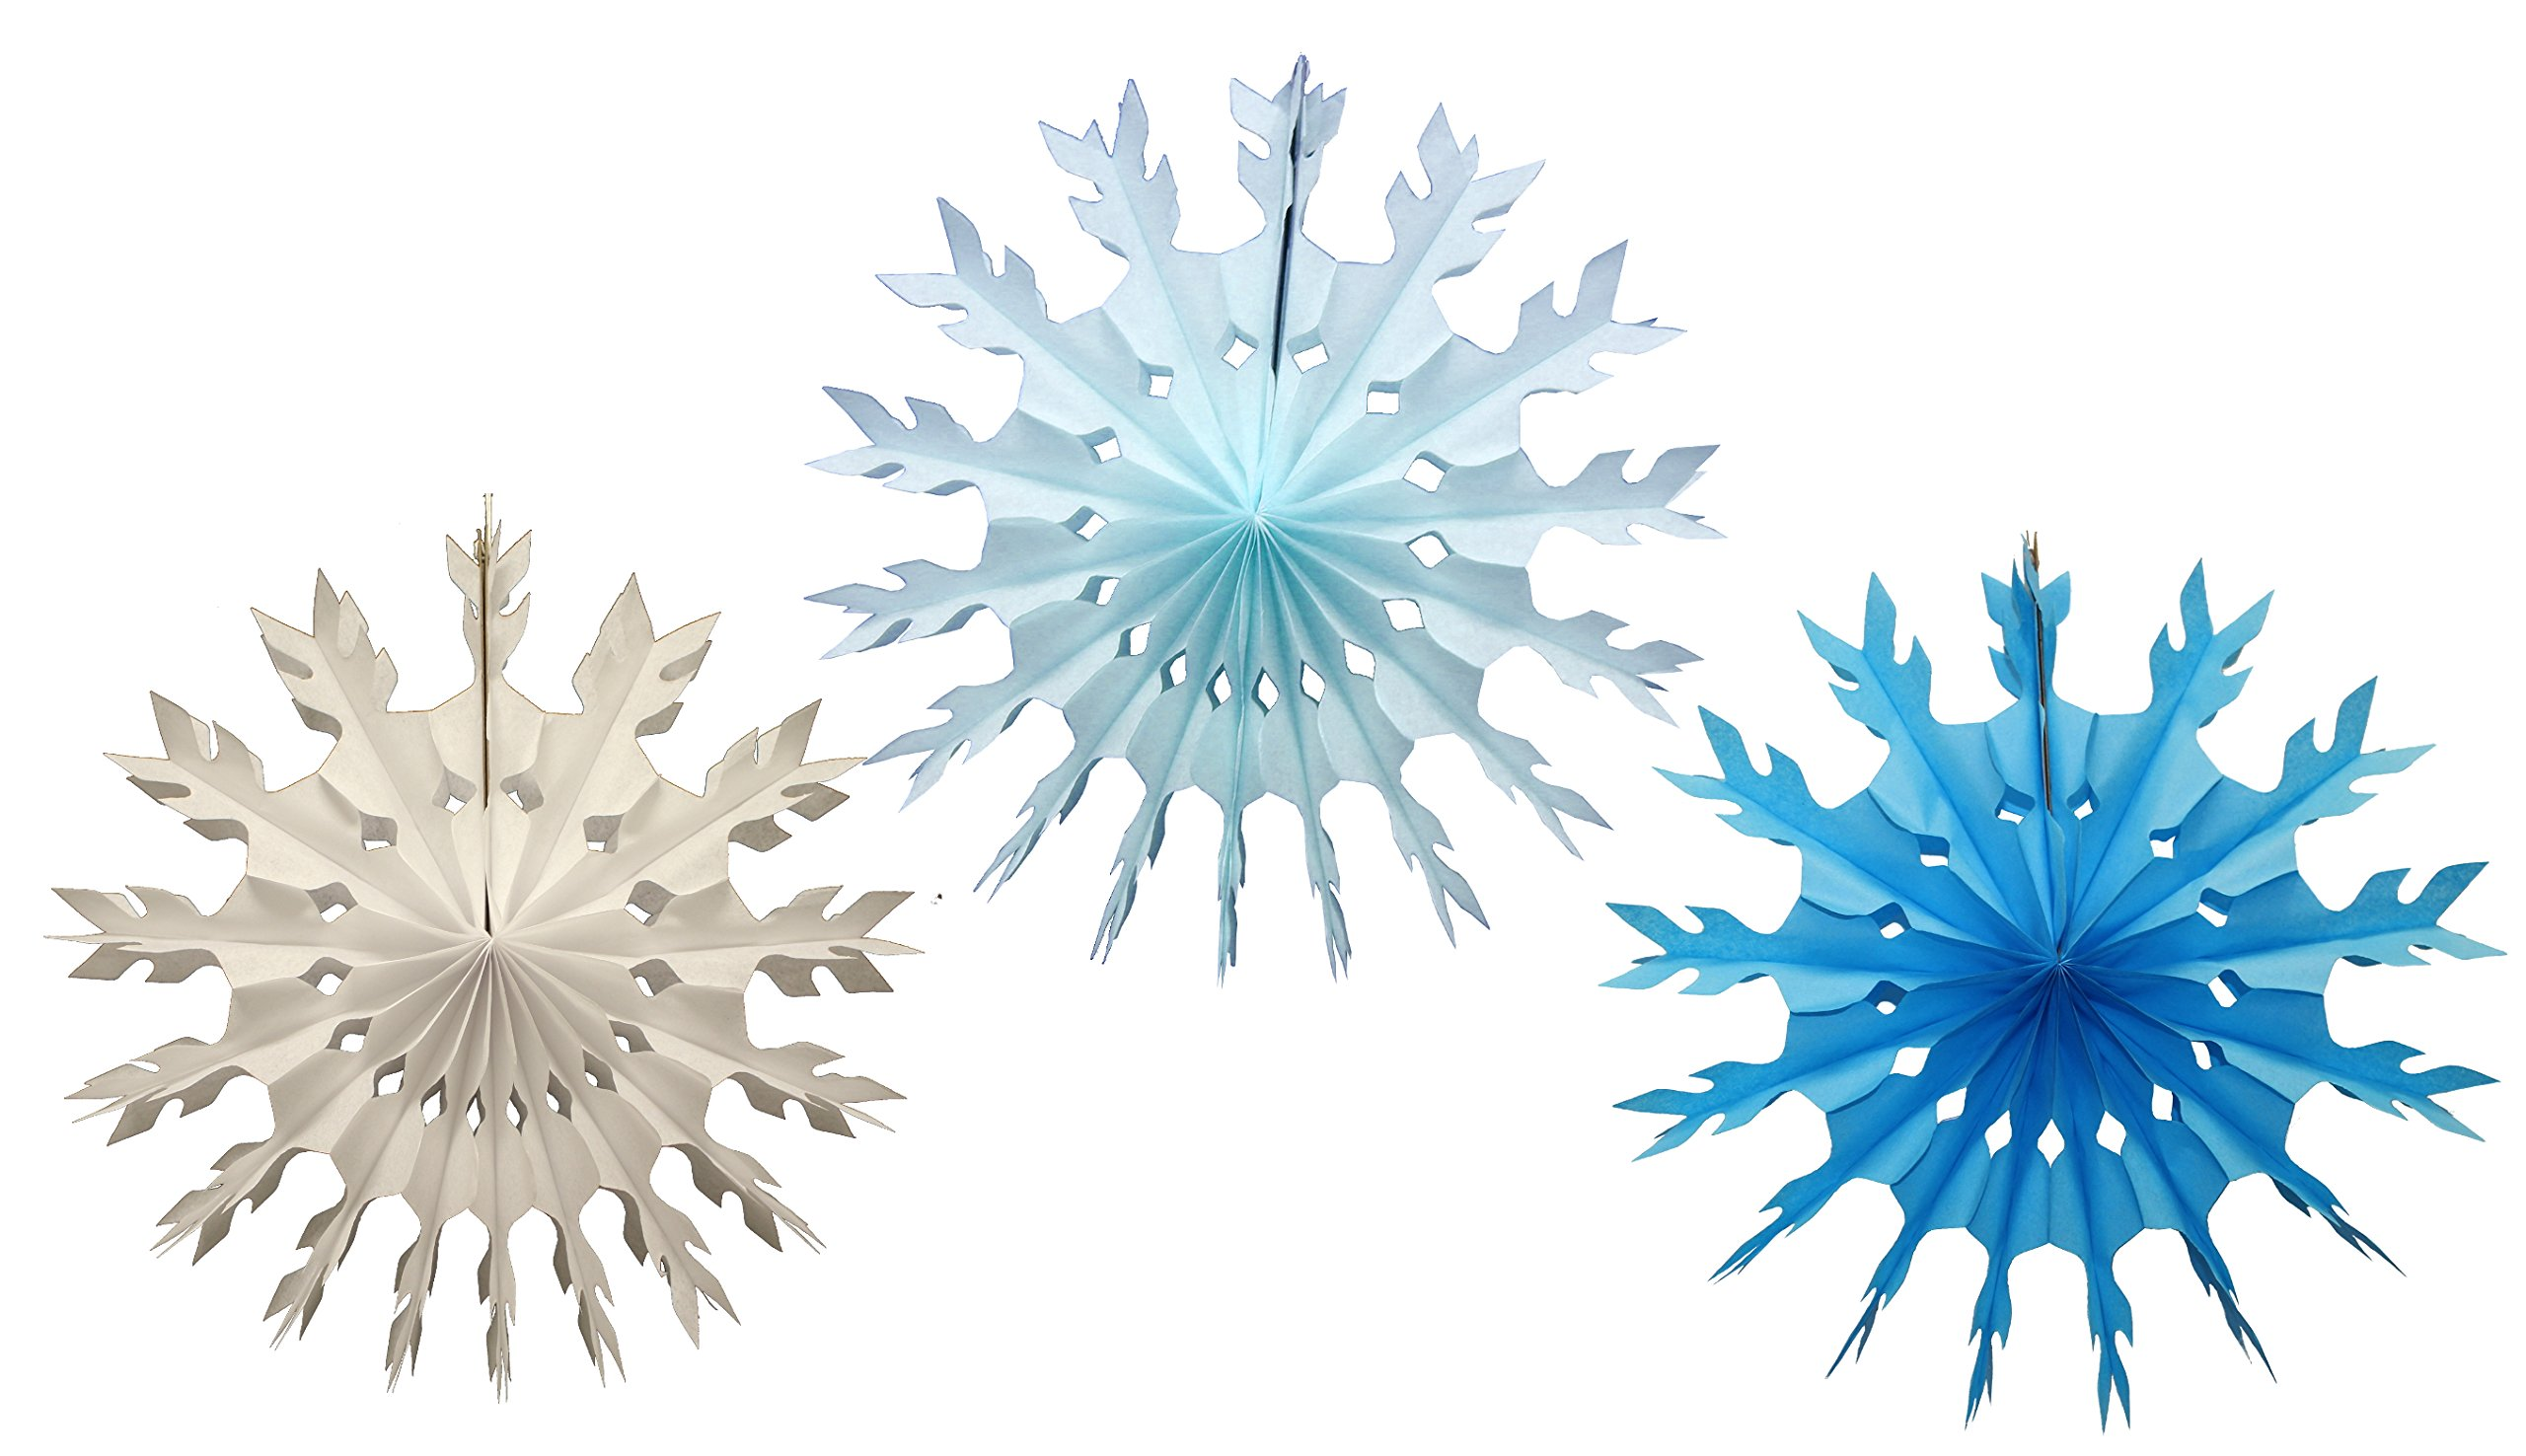 Set of 3 Small 15 Inch Tissue Paper Snowflake Decorations (Winter Mix - White, Light Blue, Turquoise)